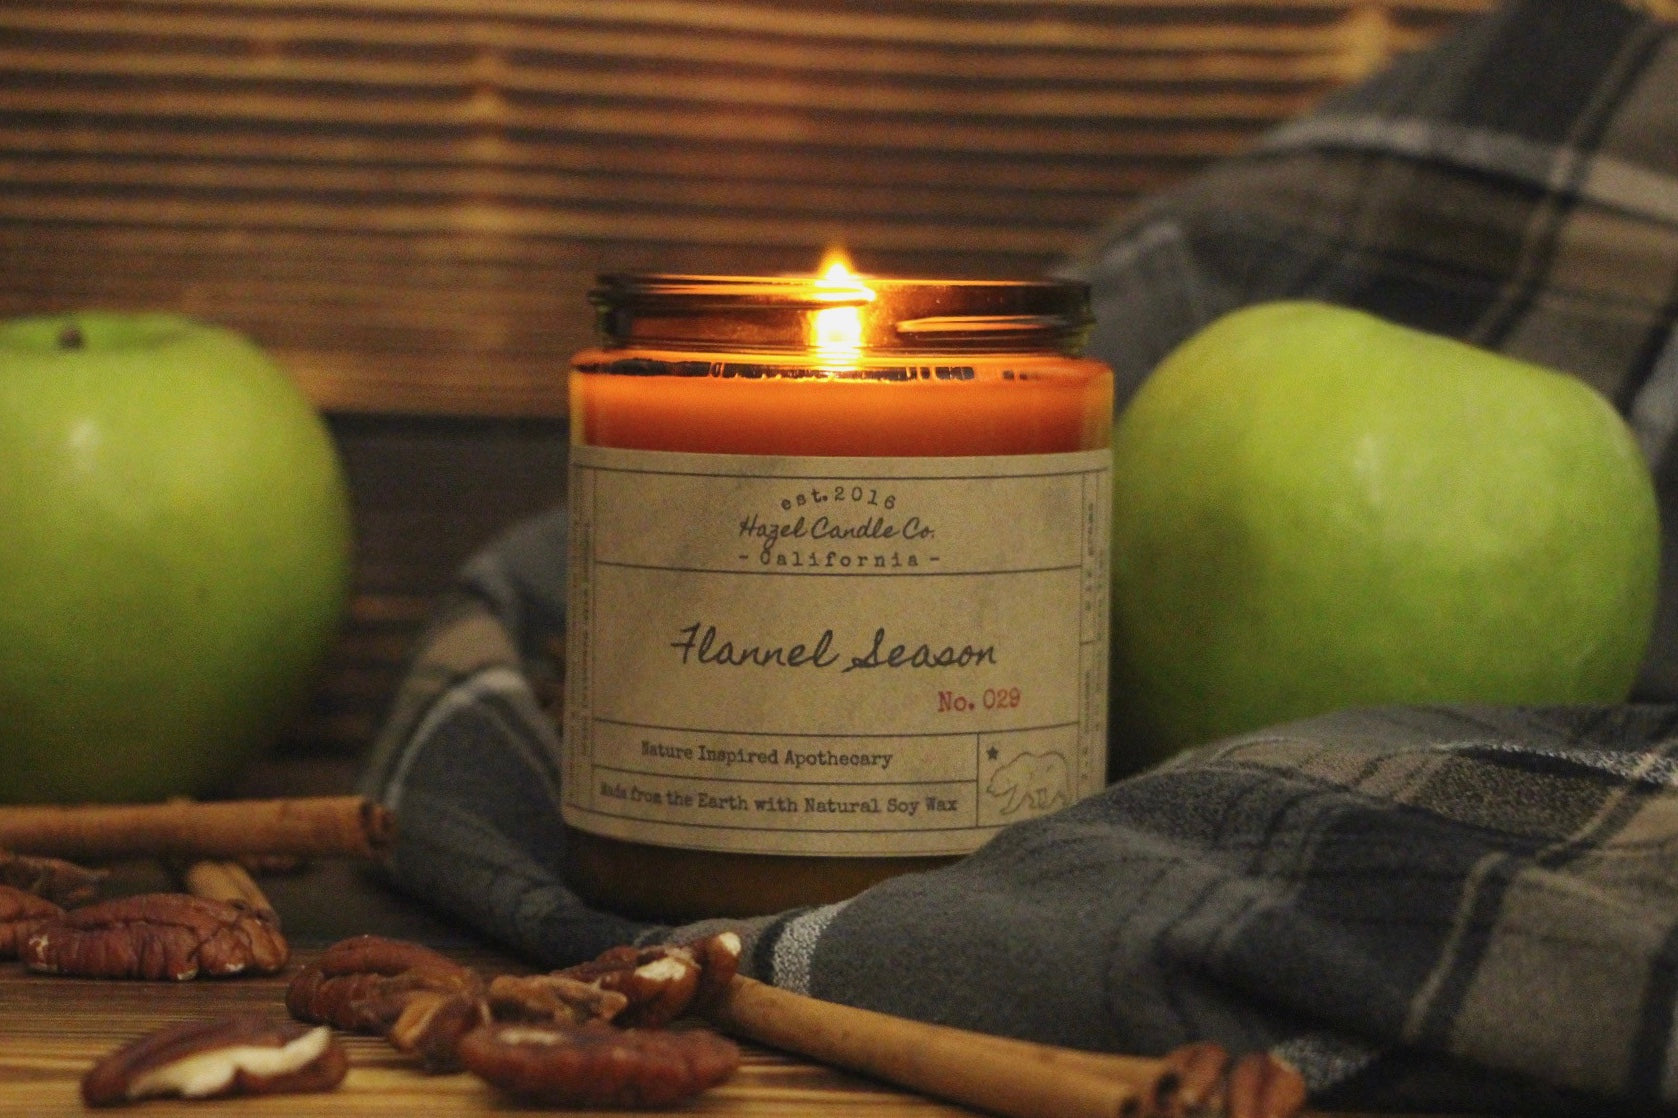 Flannel Season Soy Candle